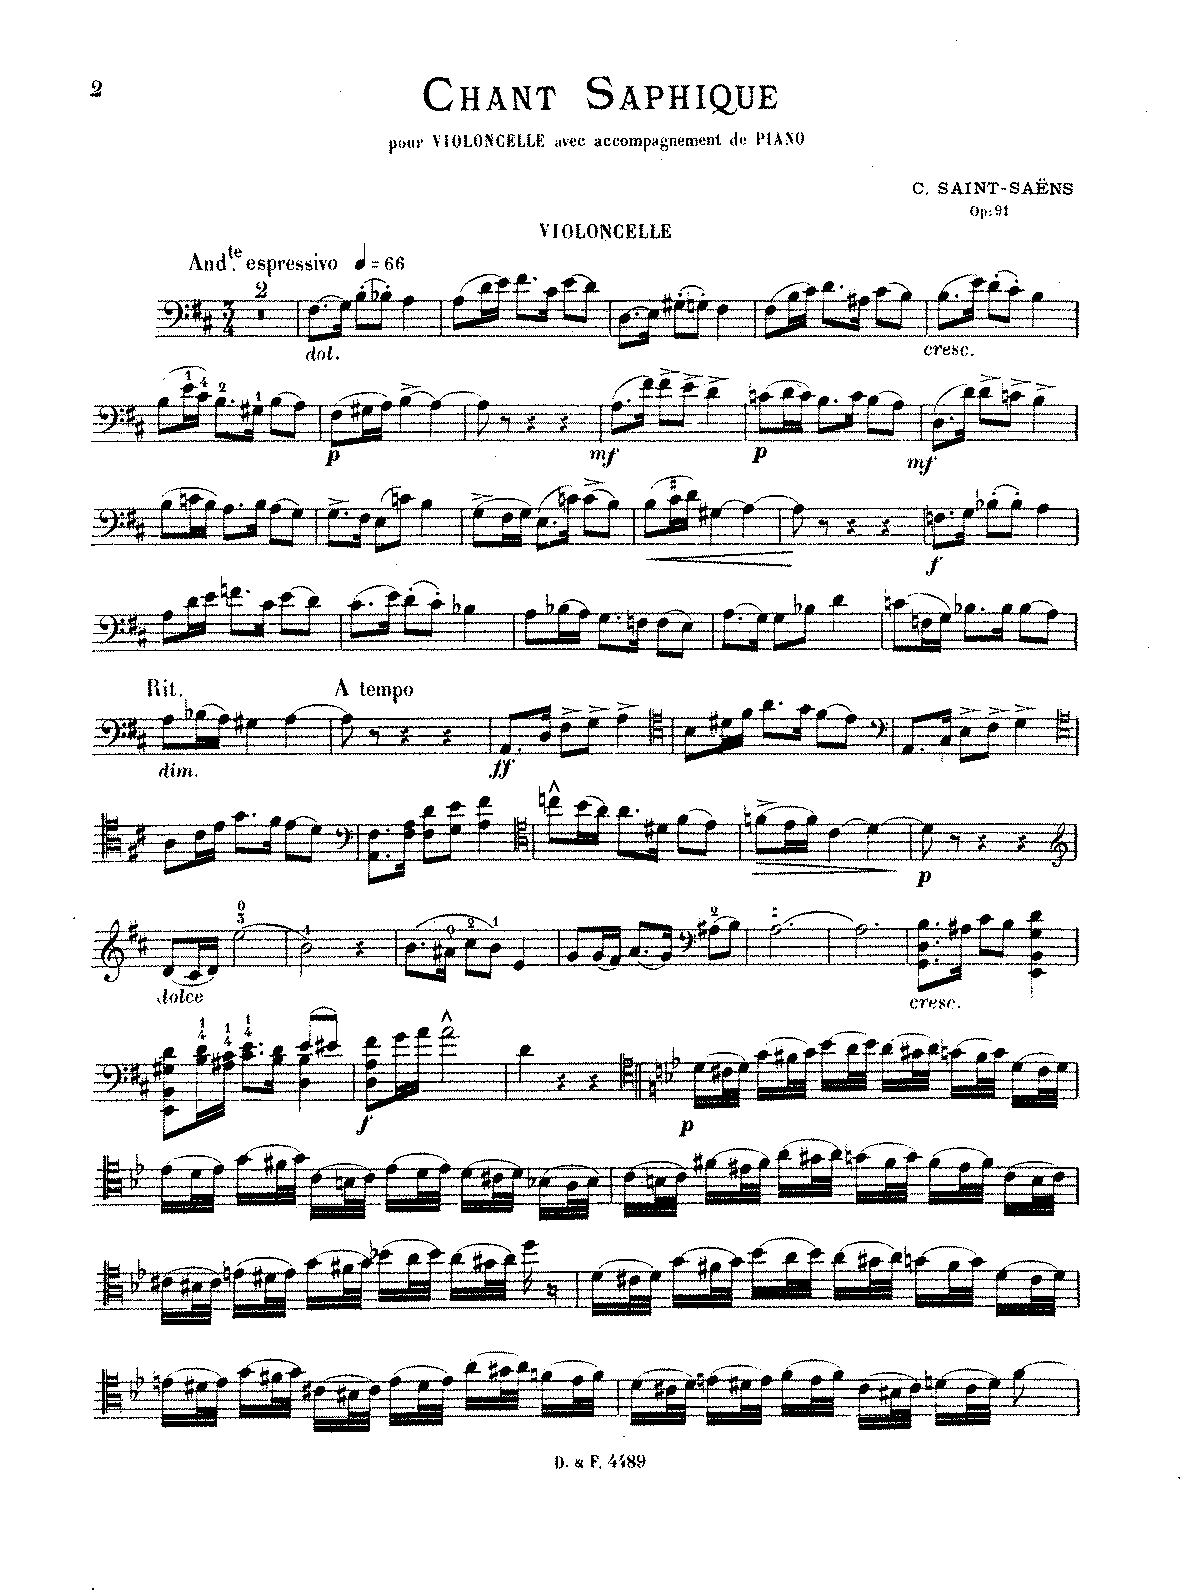 PMLP68999-Saint-Saëns - Chant saphique, Op. 91 (cello and piano).pdf